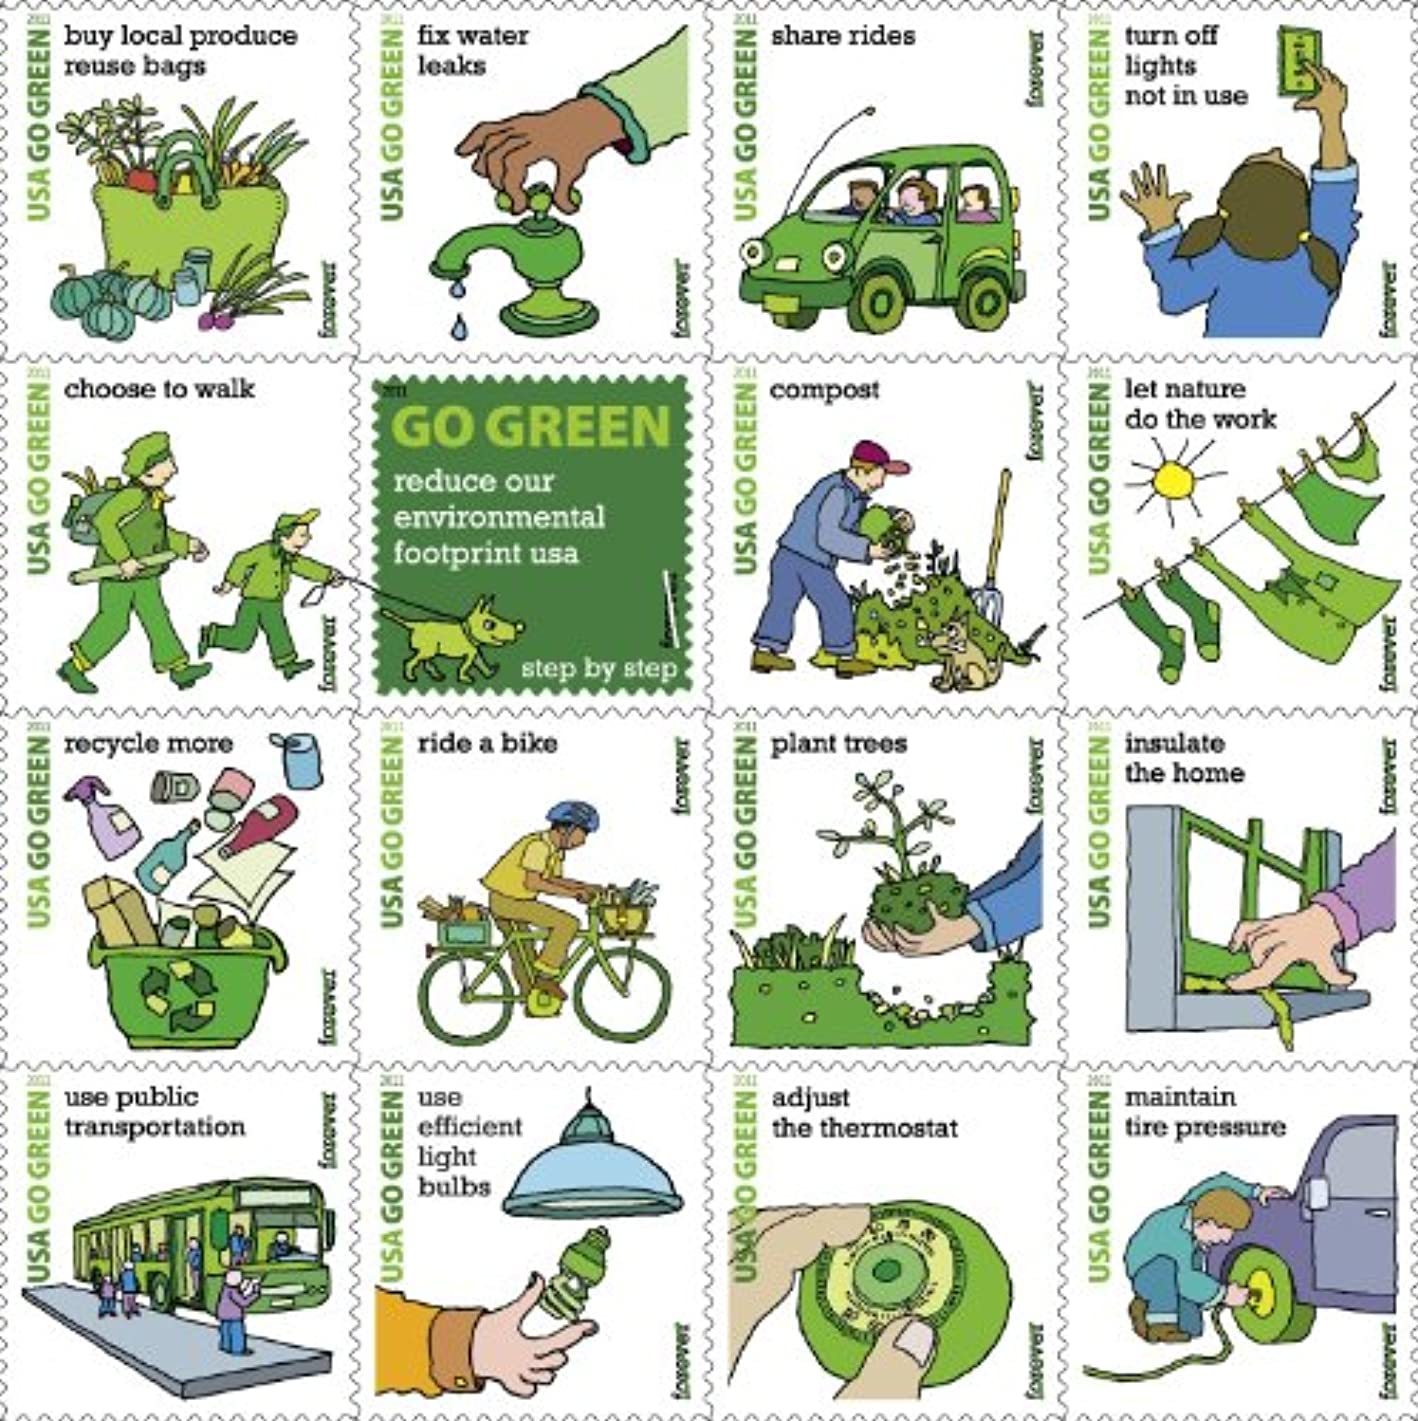 2011 Go Green Sheet of Sixteen Forever Stamps Scott 4524 By USPS zfbhxz822484703